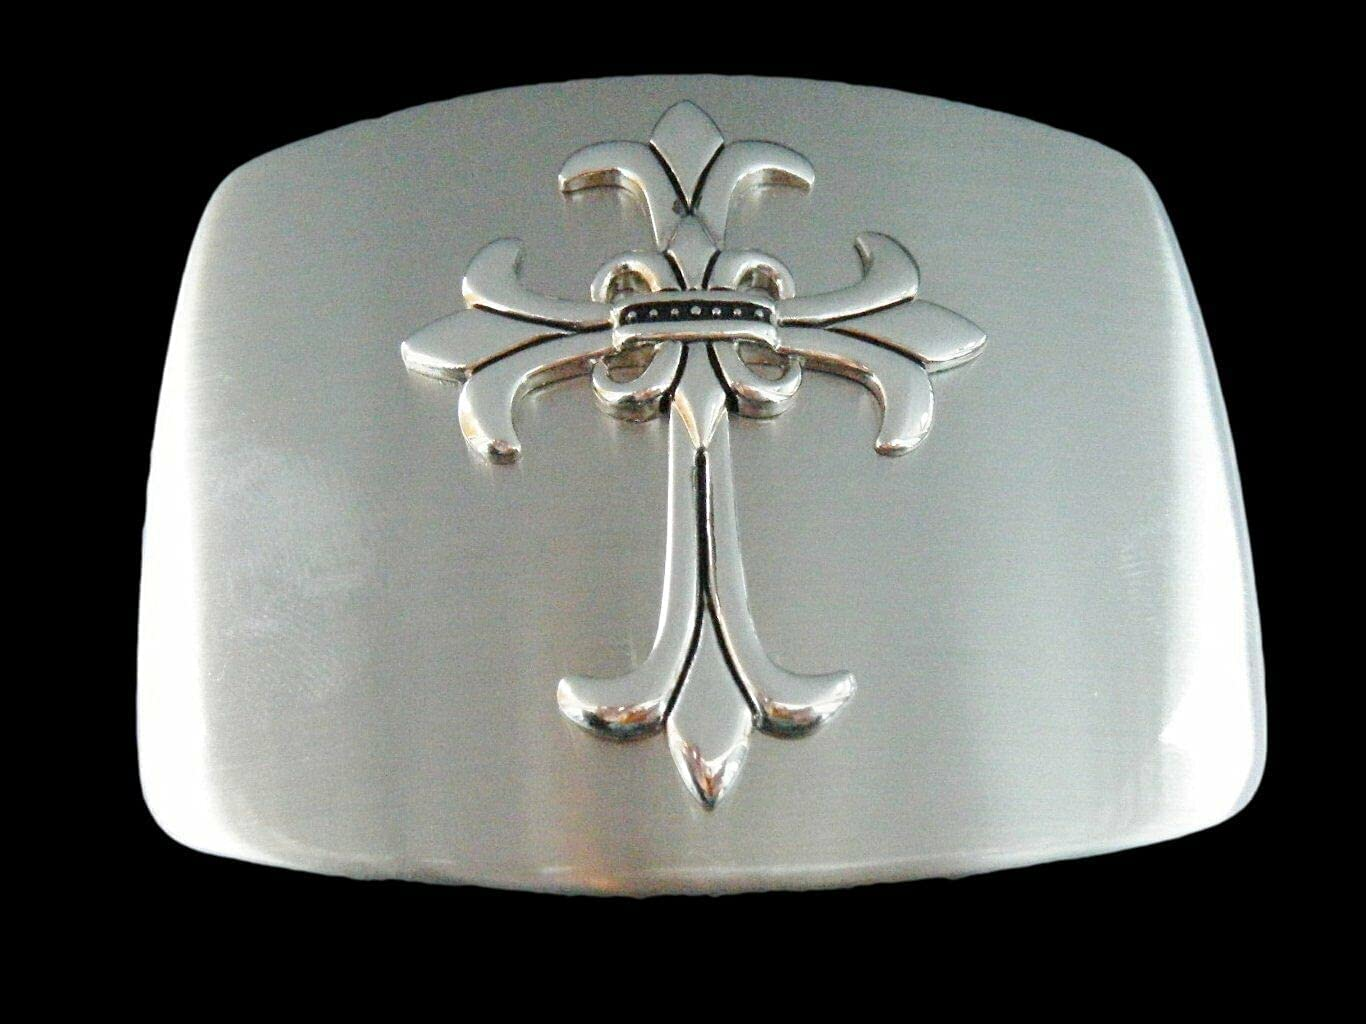 Gothic Medieval Cross New Free Shipping Belt Buckle Goth Ranking TOP17 Crosses Buckles Belts